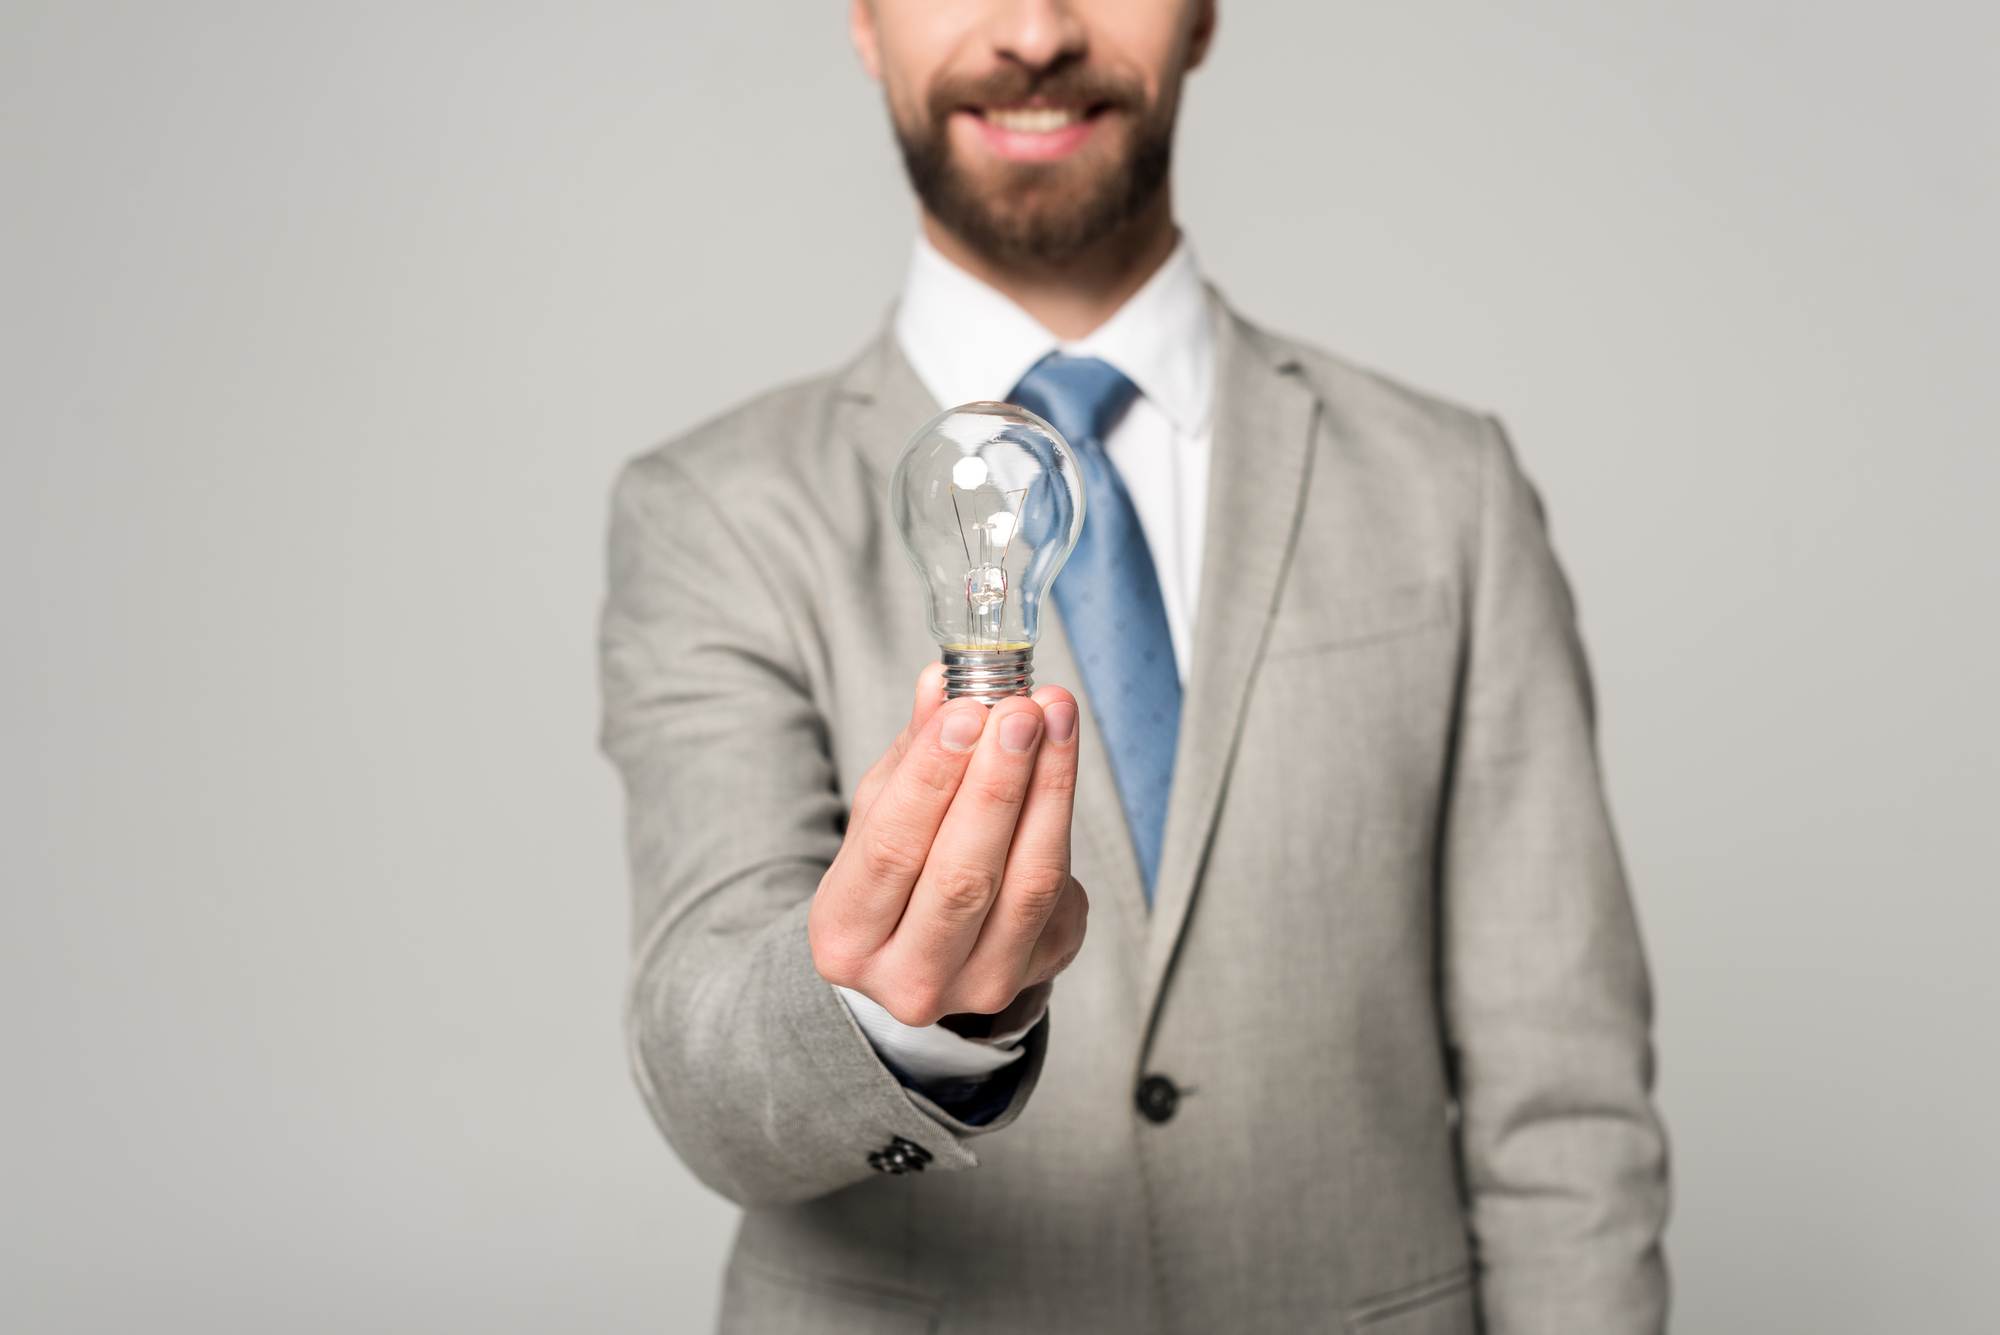 Partial view of smiling businessman holding light bulb isolated on grey